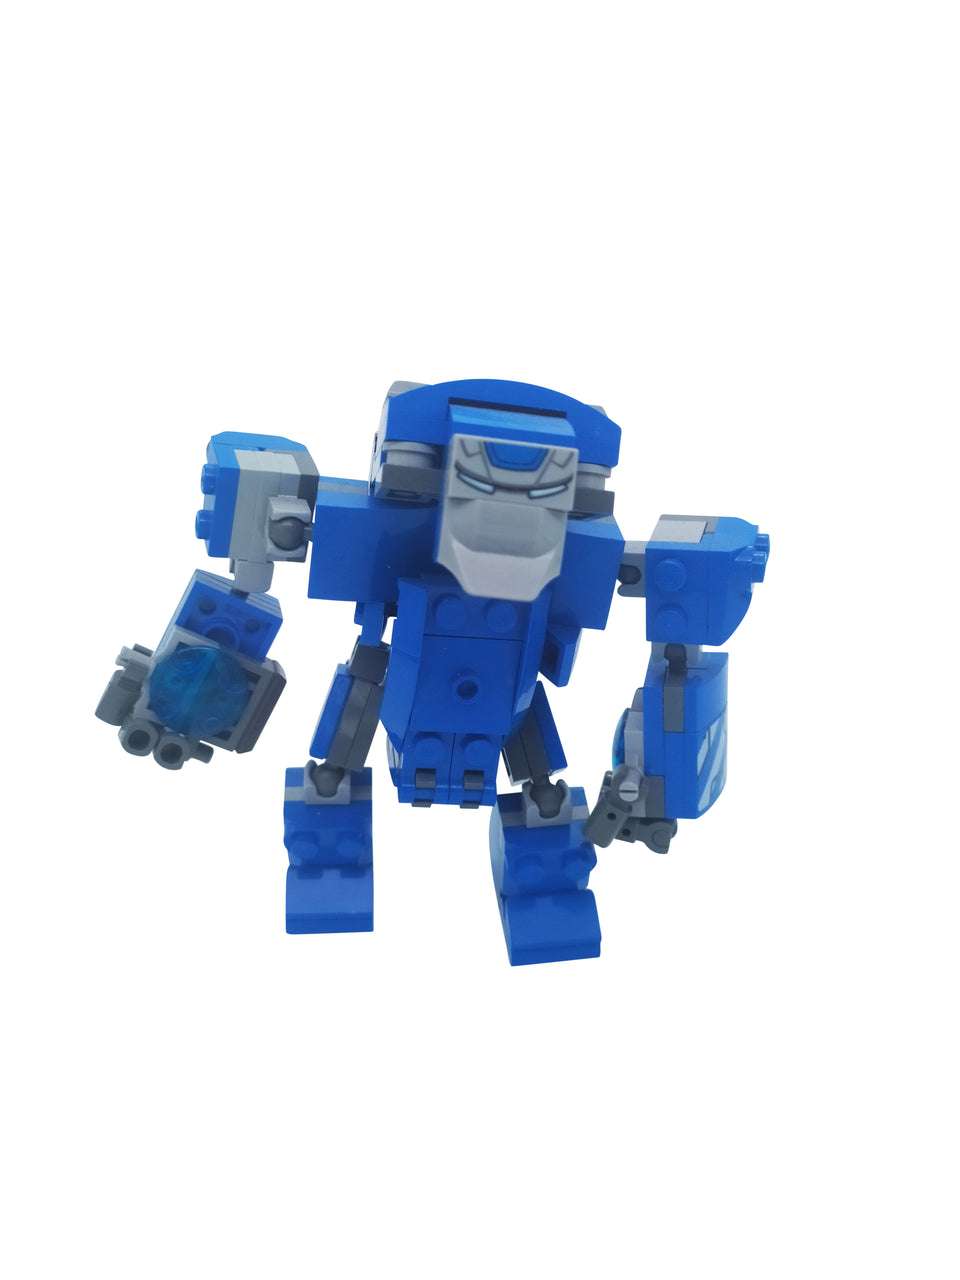 special set of a Blue Lego robot of the Iron Man